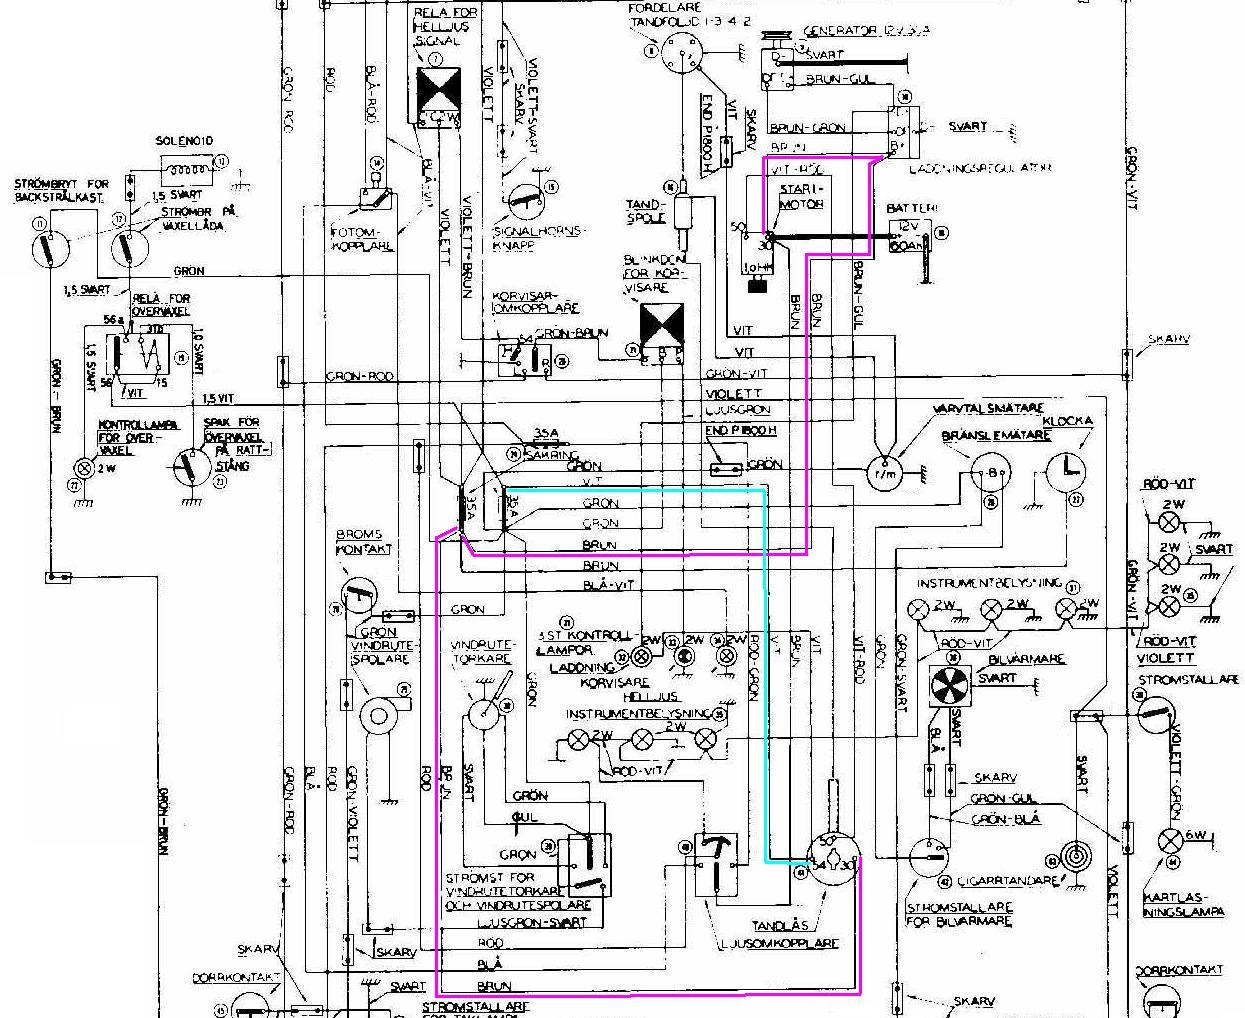 1800 Wiring Diagram marked up 1800 ignition wiring swedish vs british design  at edmiracle.co